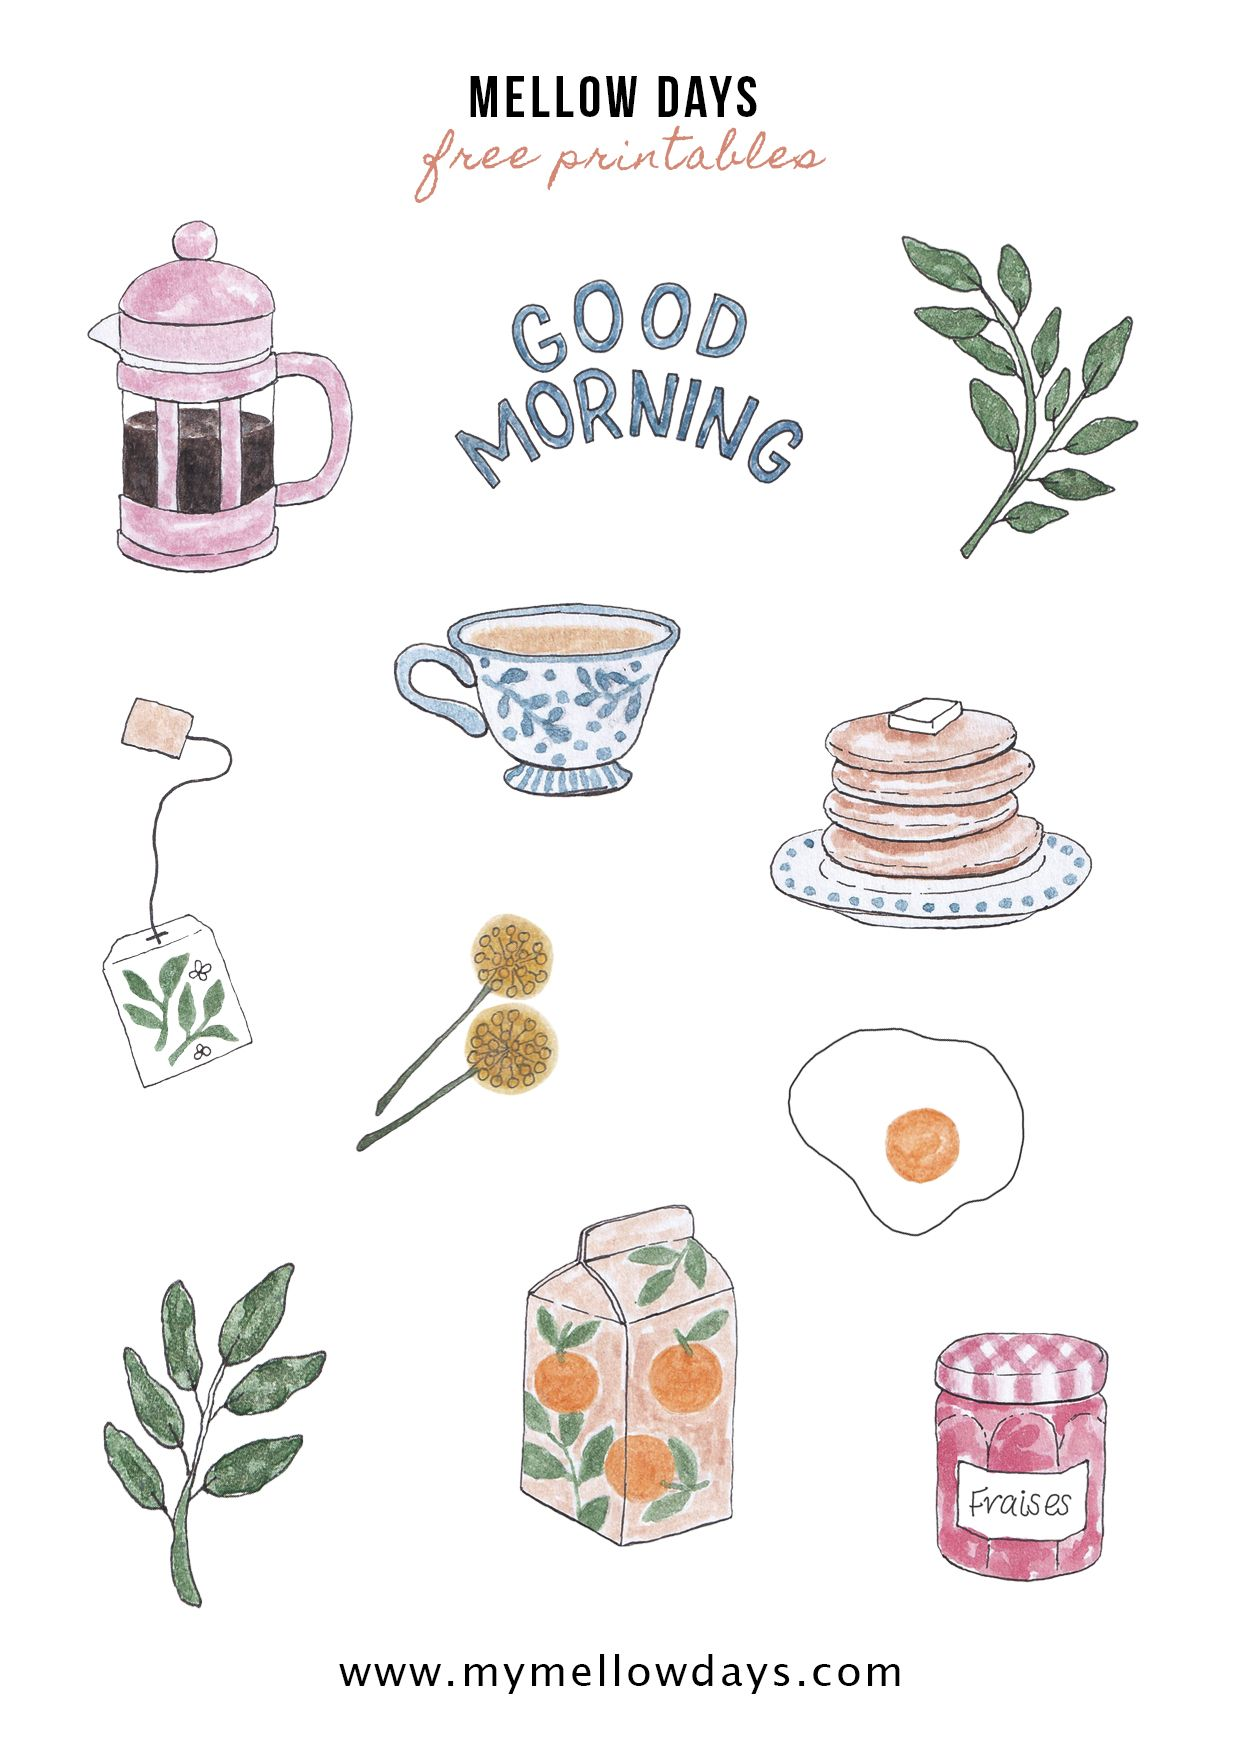 Free Printable Stickers For Bujo Bullet Journal Planner Free Printable Stickers Sticker Art Printable Stickers